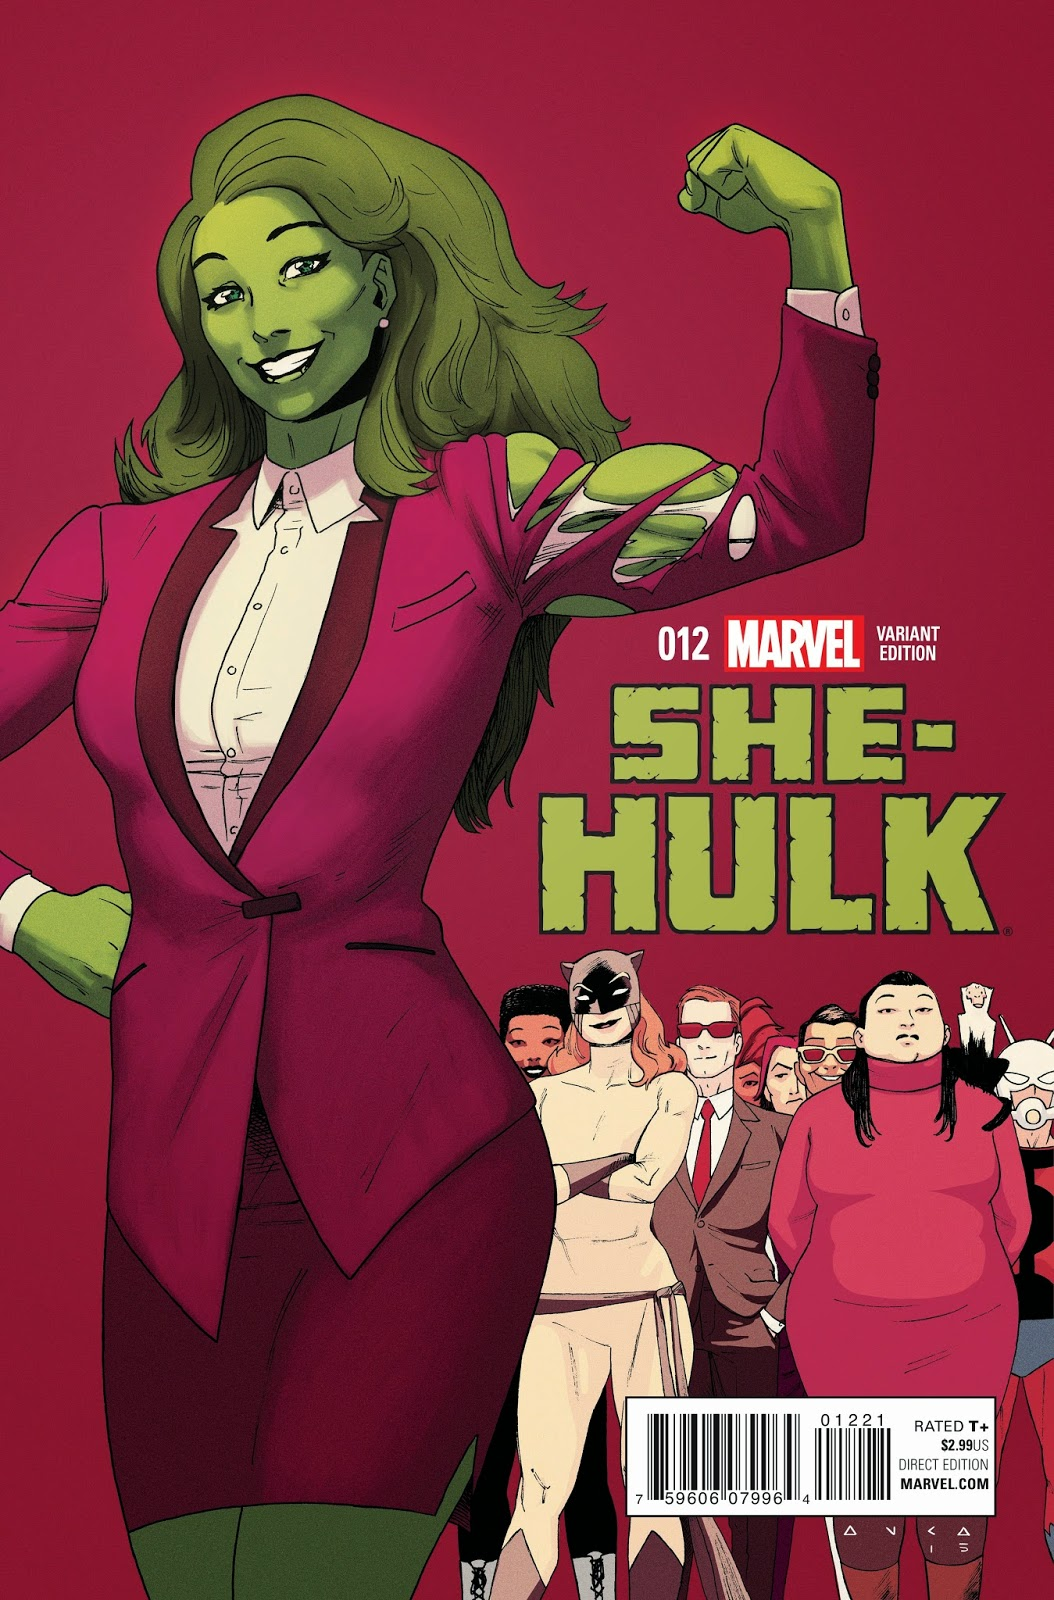 http://www.avclub.com/article/exclusive-marvel-preview-she-hulk-12-ends-brillian-215156